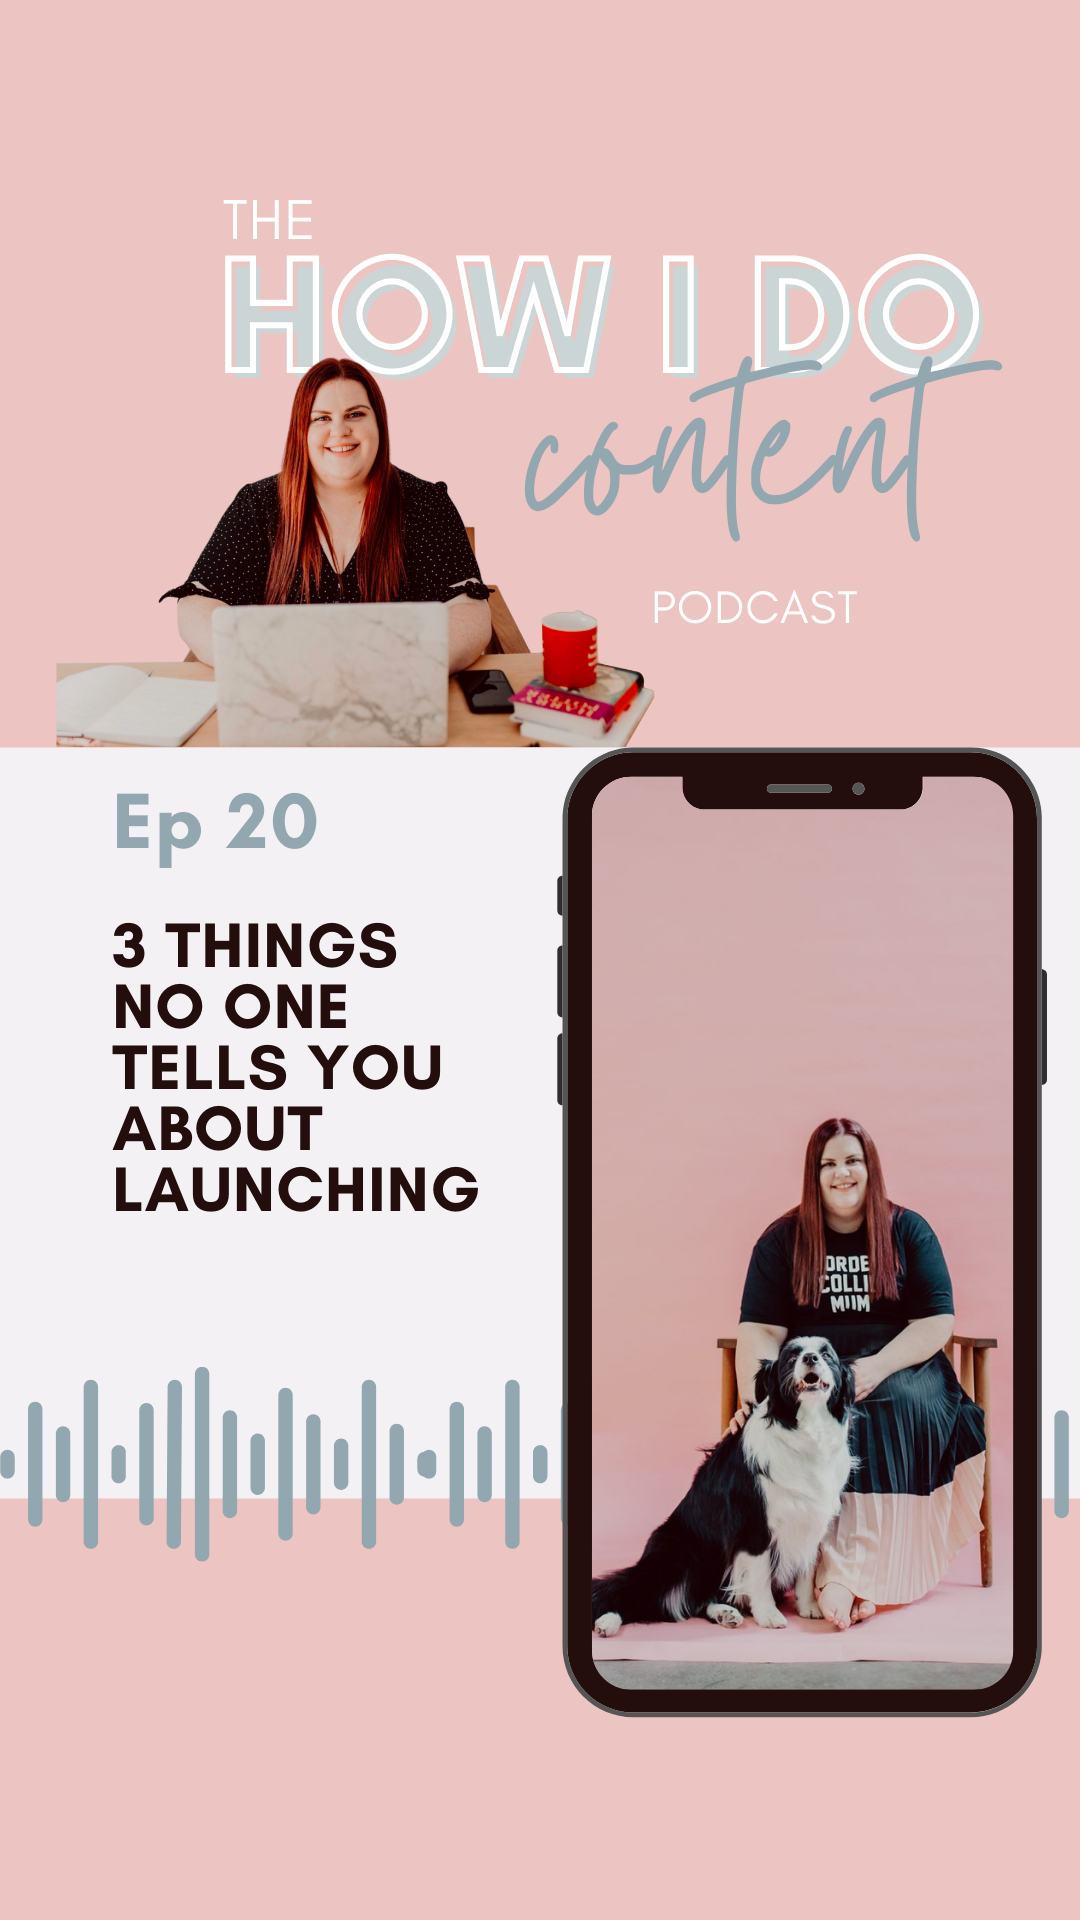 3 Things No One Tells You About Launching